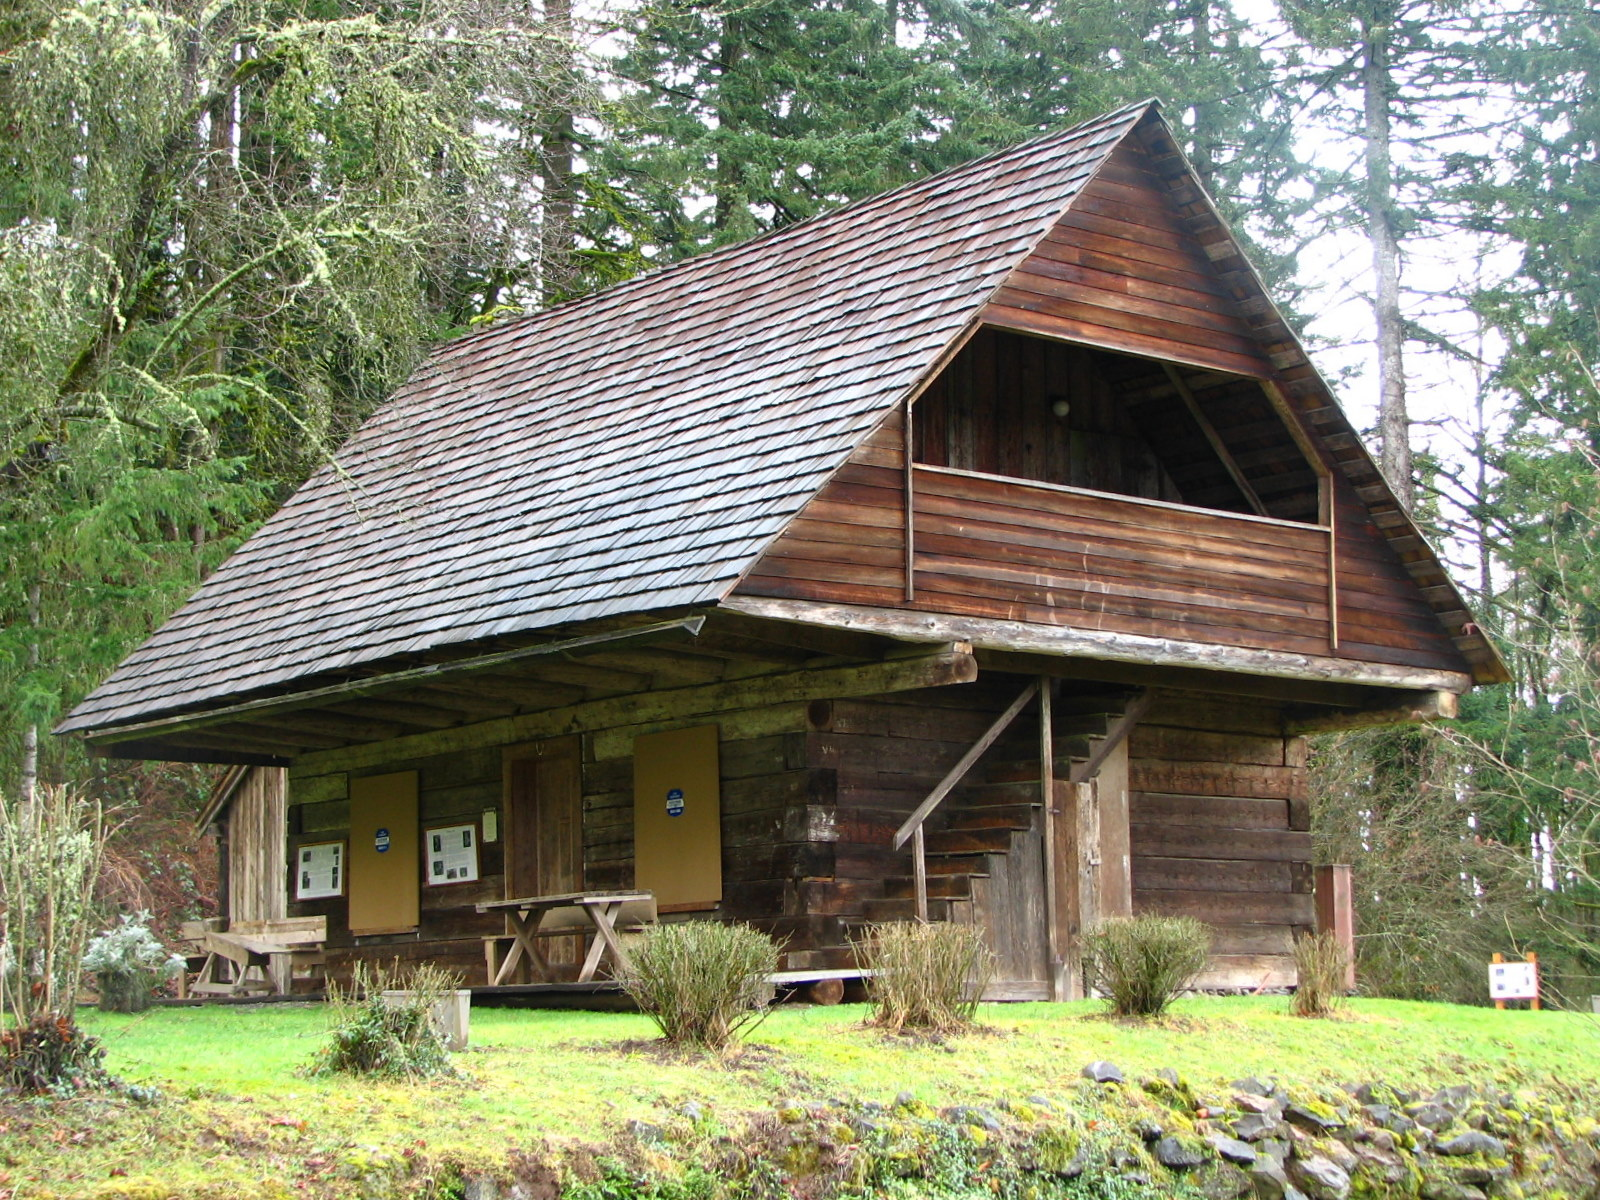 Superb img of File:Baker Log Cabin Carver Oregon.jpg Wikipedia with #8D9A31 color and 1600x1200 pixels